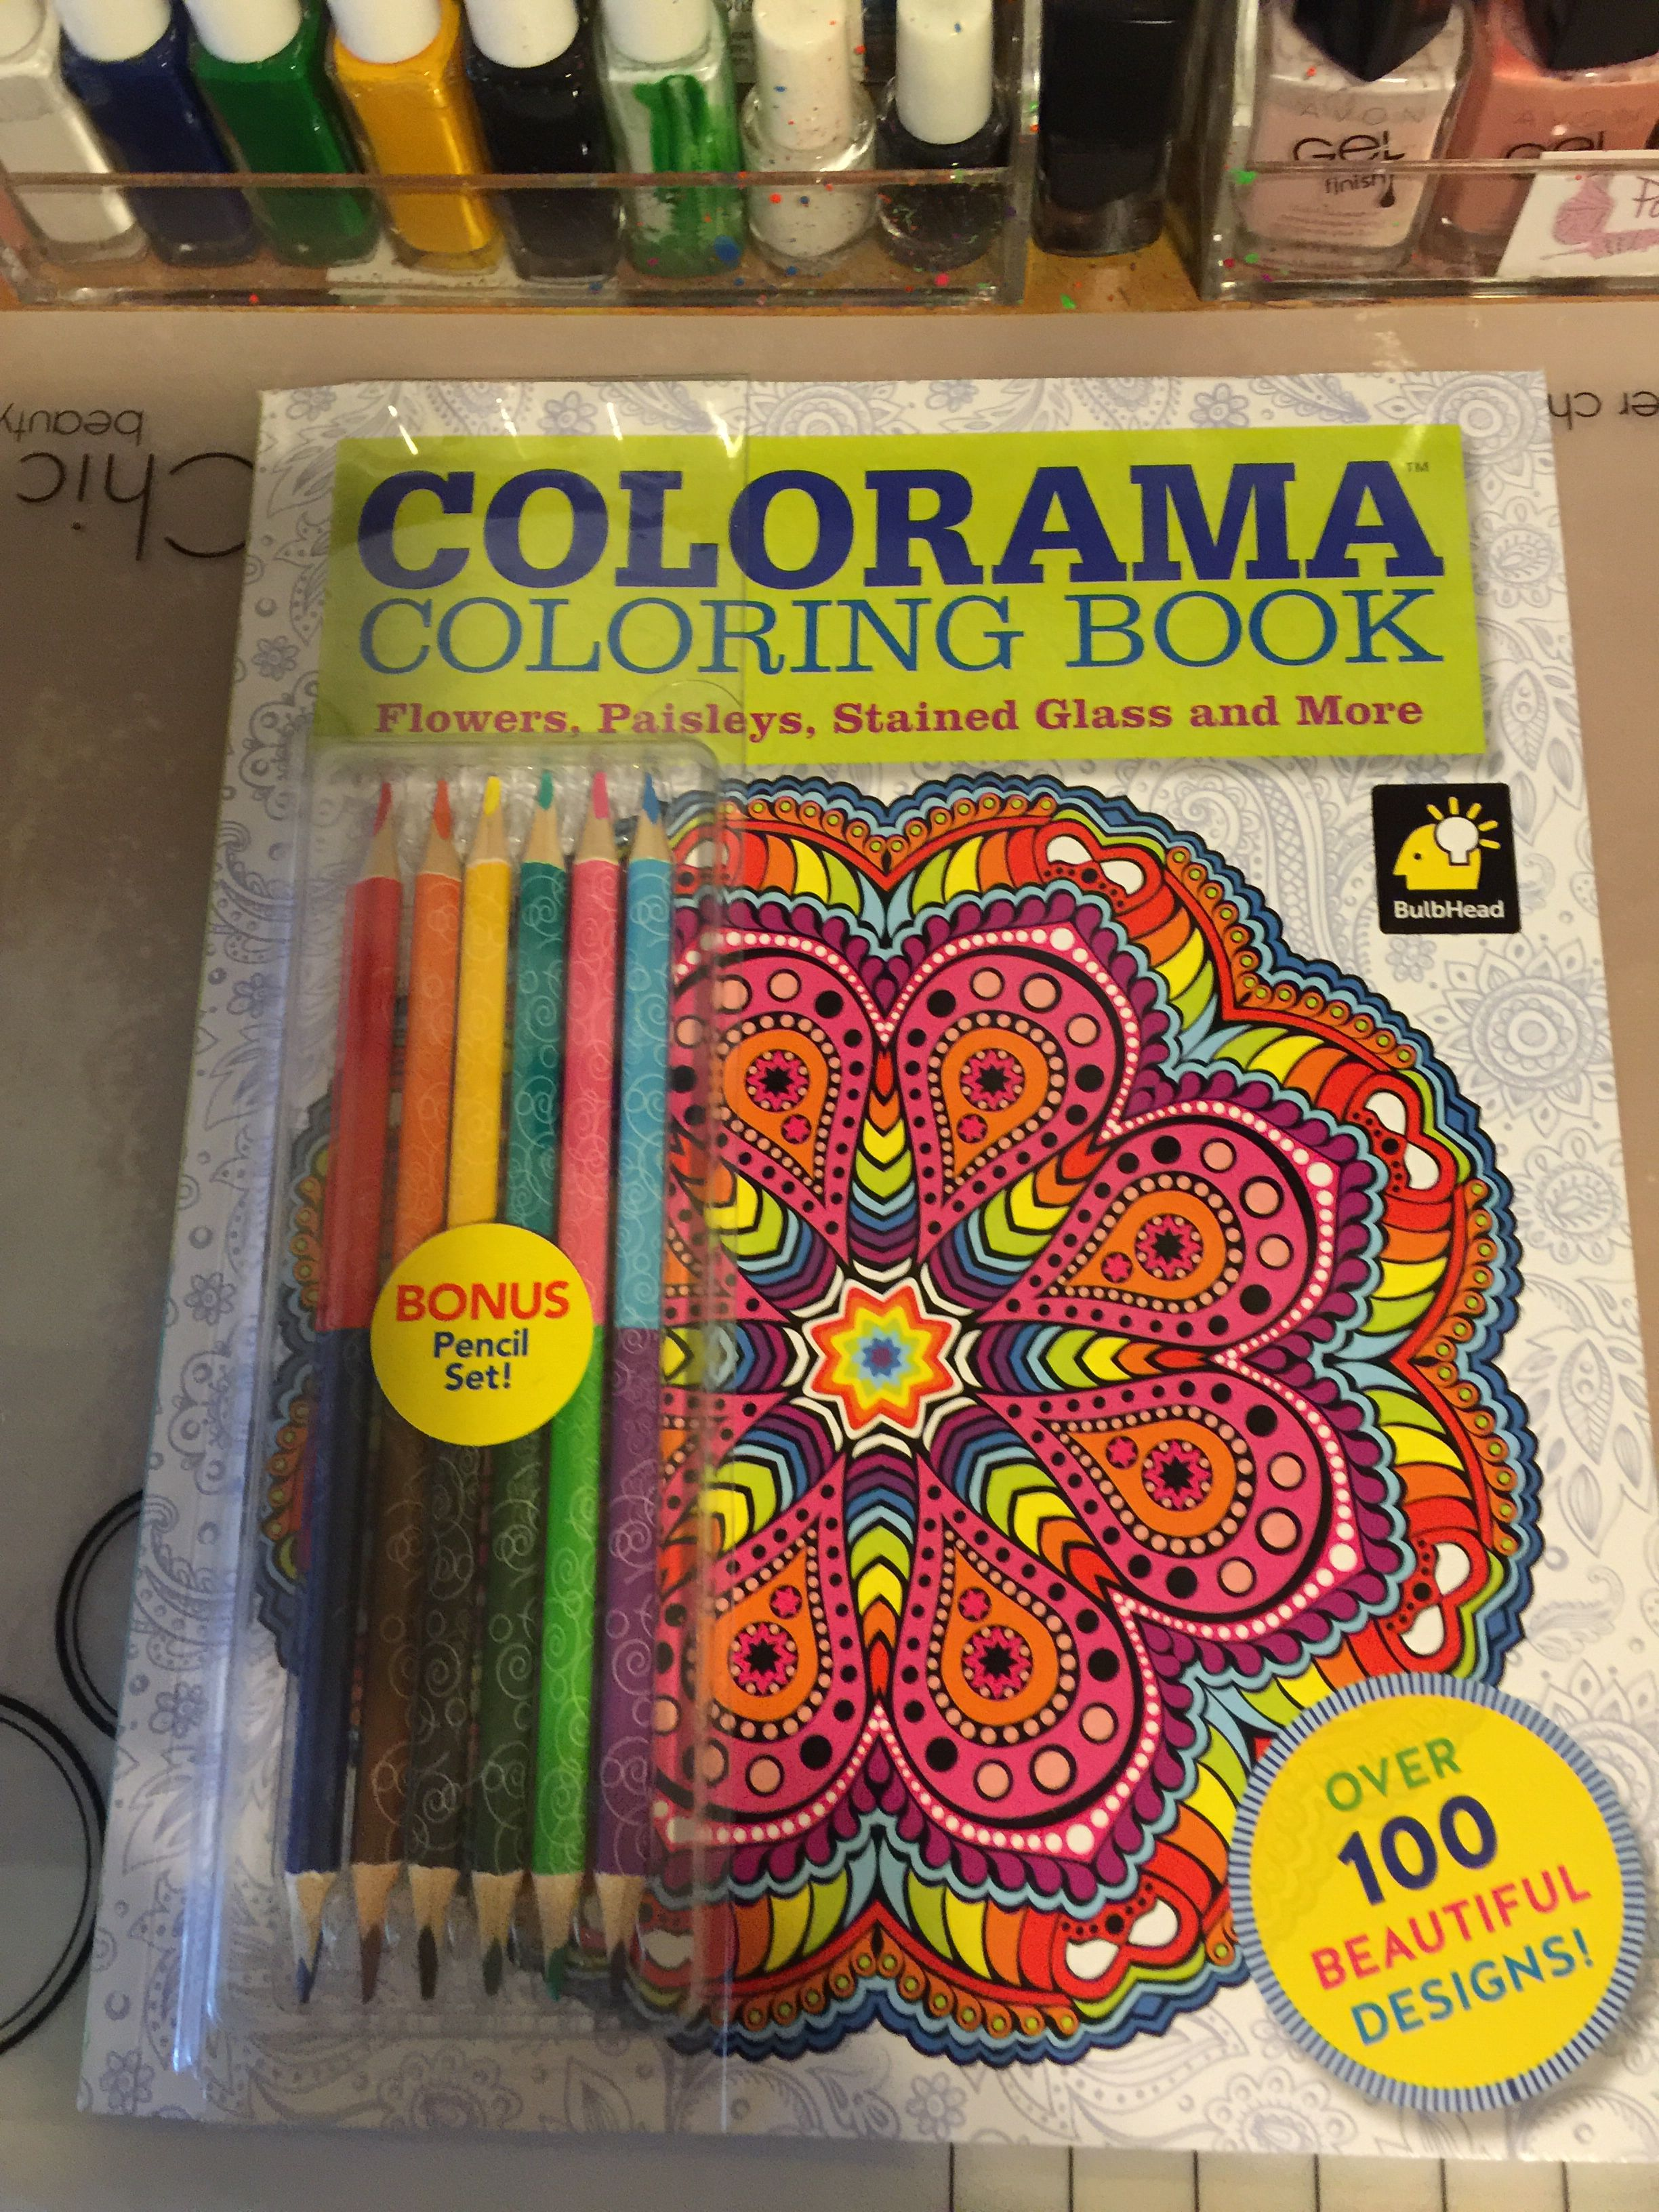 Colorama Coloring Book Mandalas From Walmart I Got This For Christmas Coloring Books Book Flowers Coloring Book Art